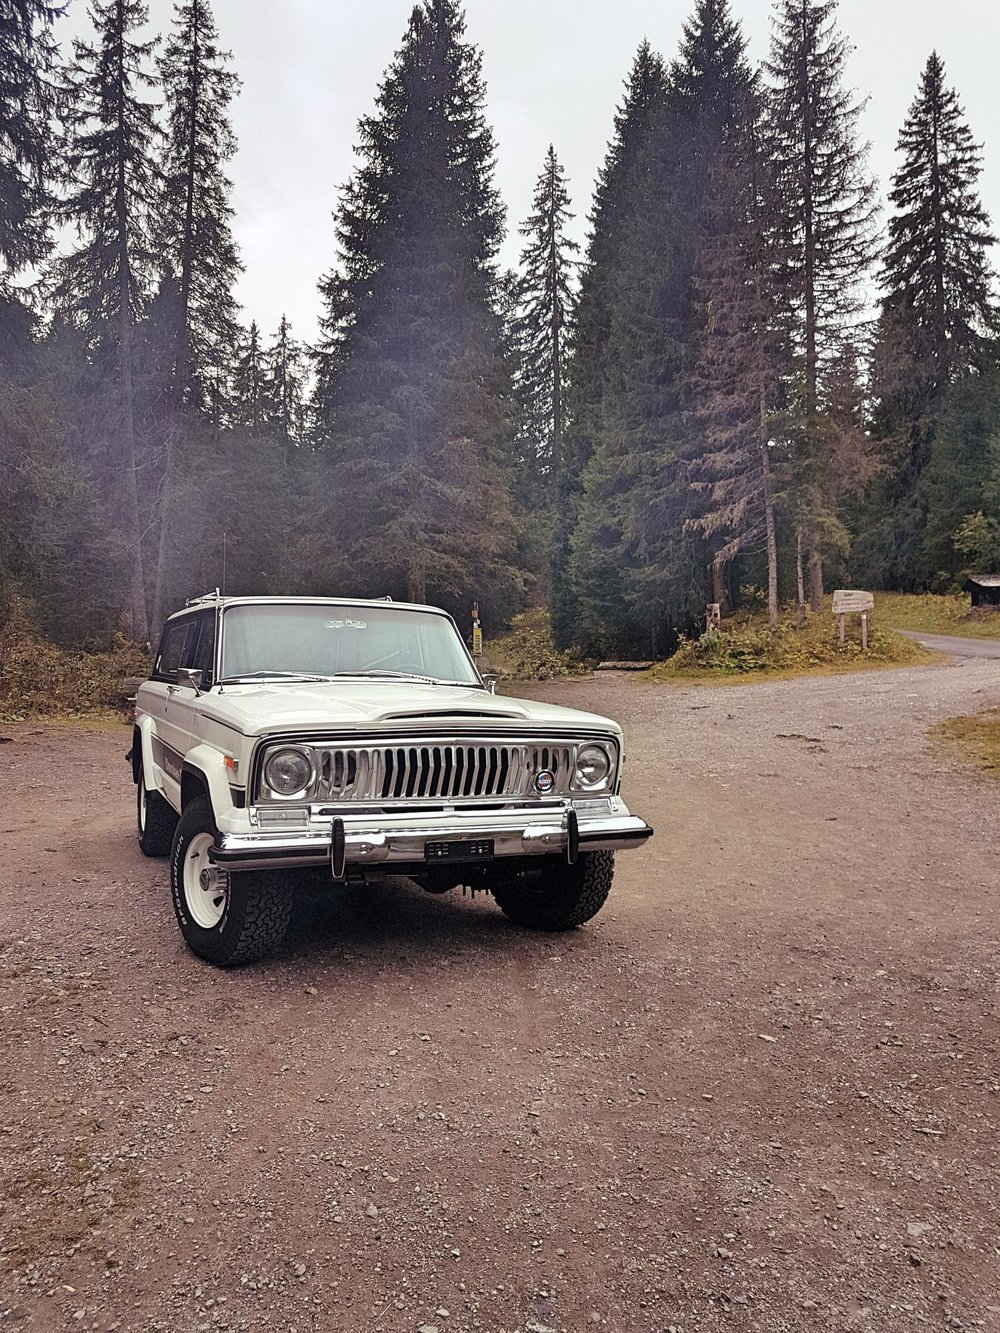 jeep-cherokee-chief-1978-shooting-morgins-switzerland-21.jpg